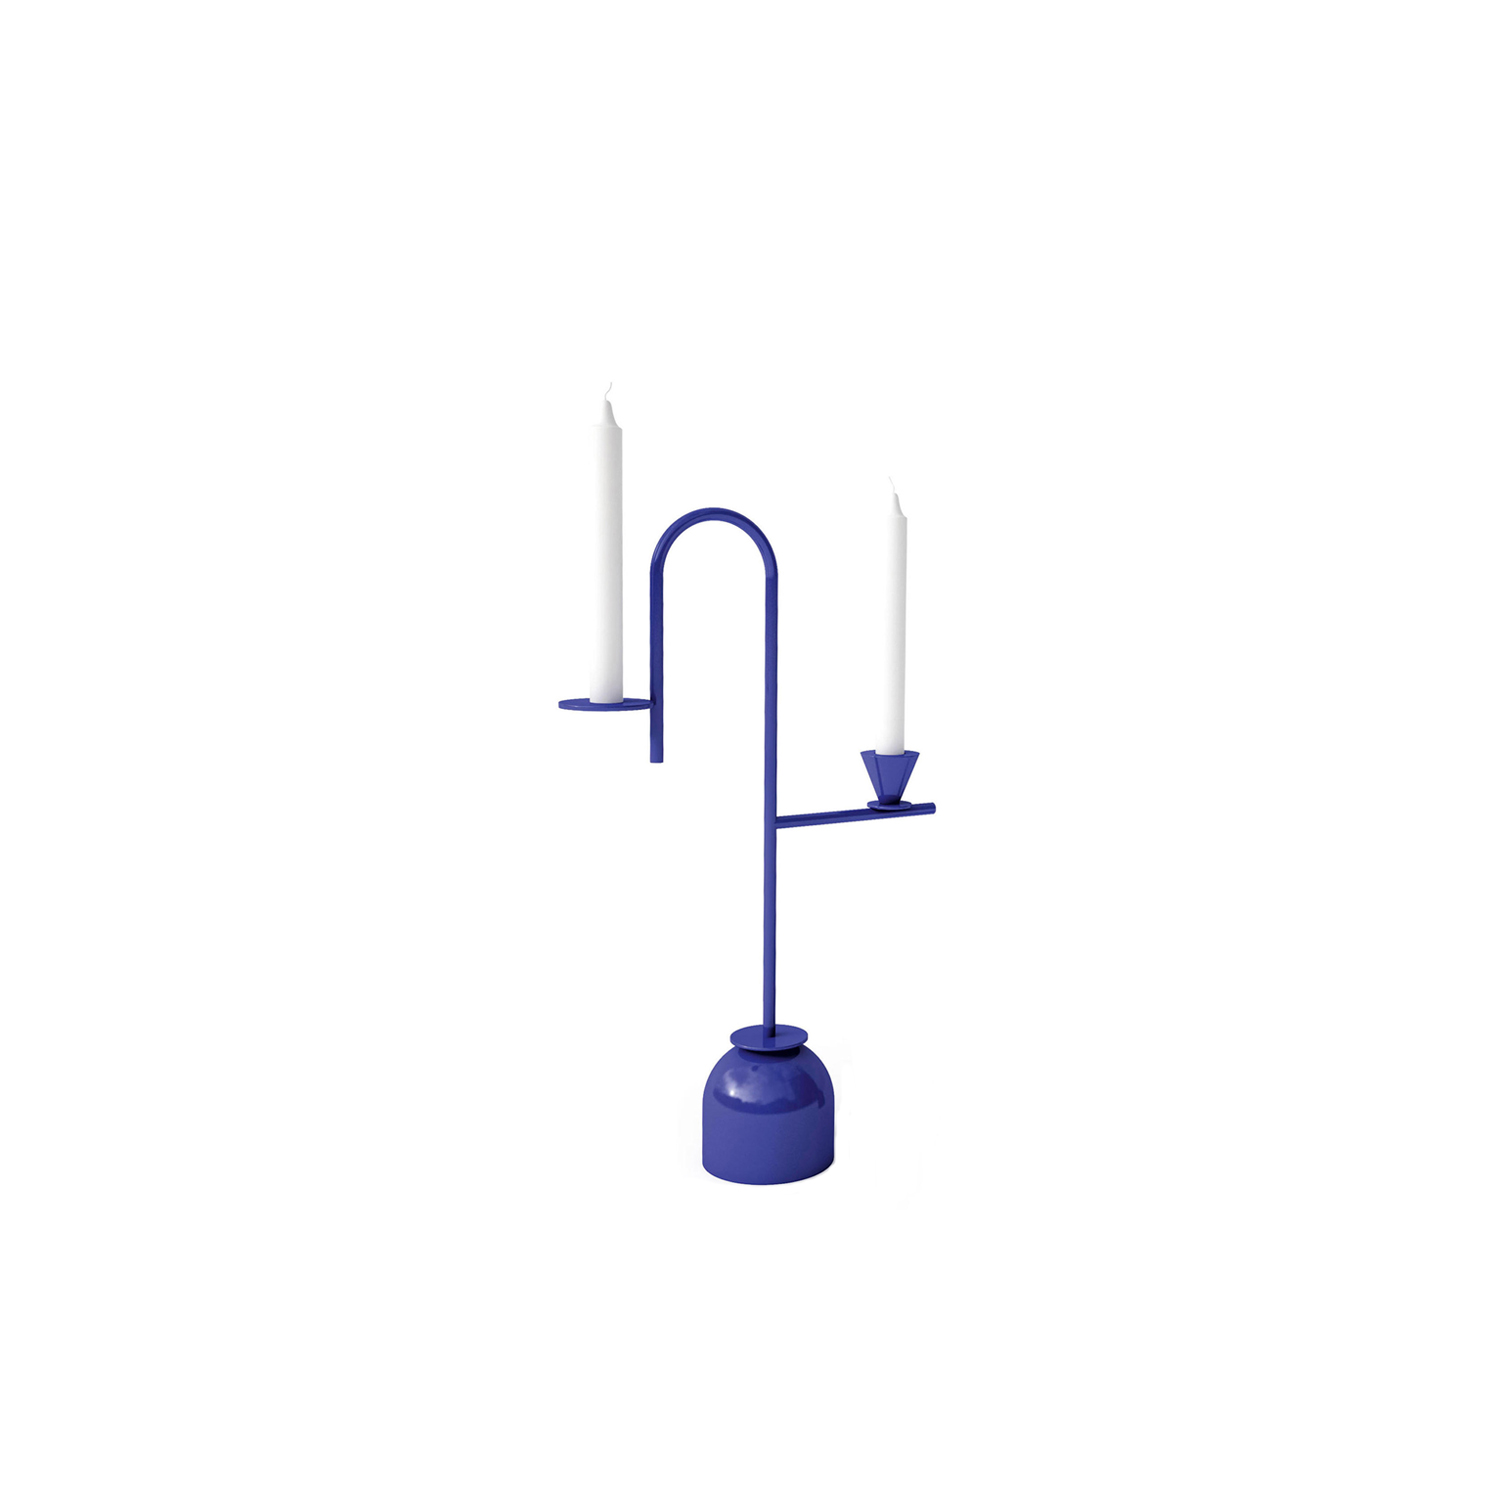 Blue No.2 Candleholder - Graceful geometry characterizes this pair of Blue Candleholders by designer Thomas Dariel. For this project, he defined space with slender curved stems, illuminated with indigo blue.